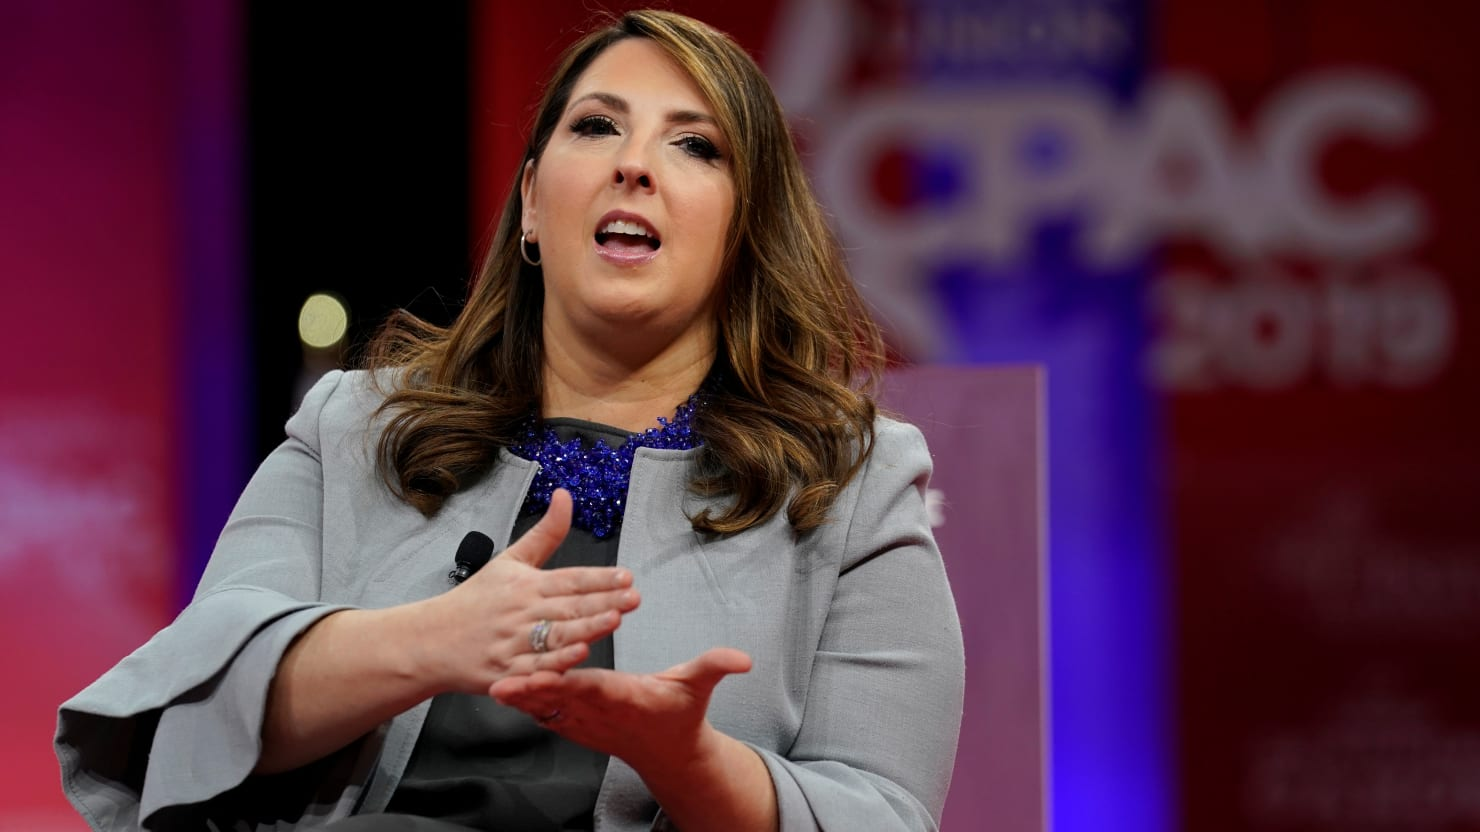 RNC Chair Ronna McDaniel Also Voted by Mail